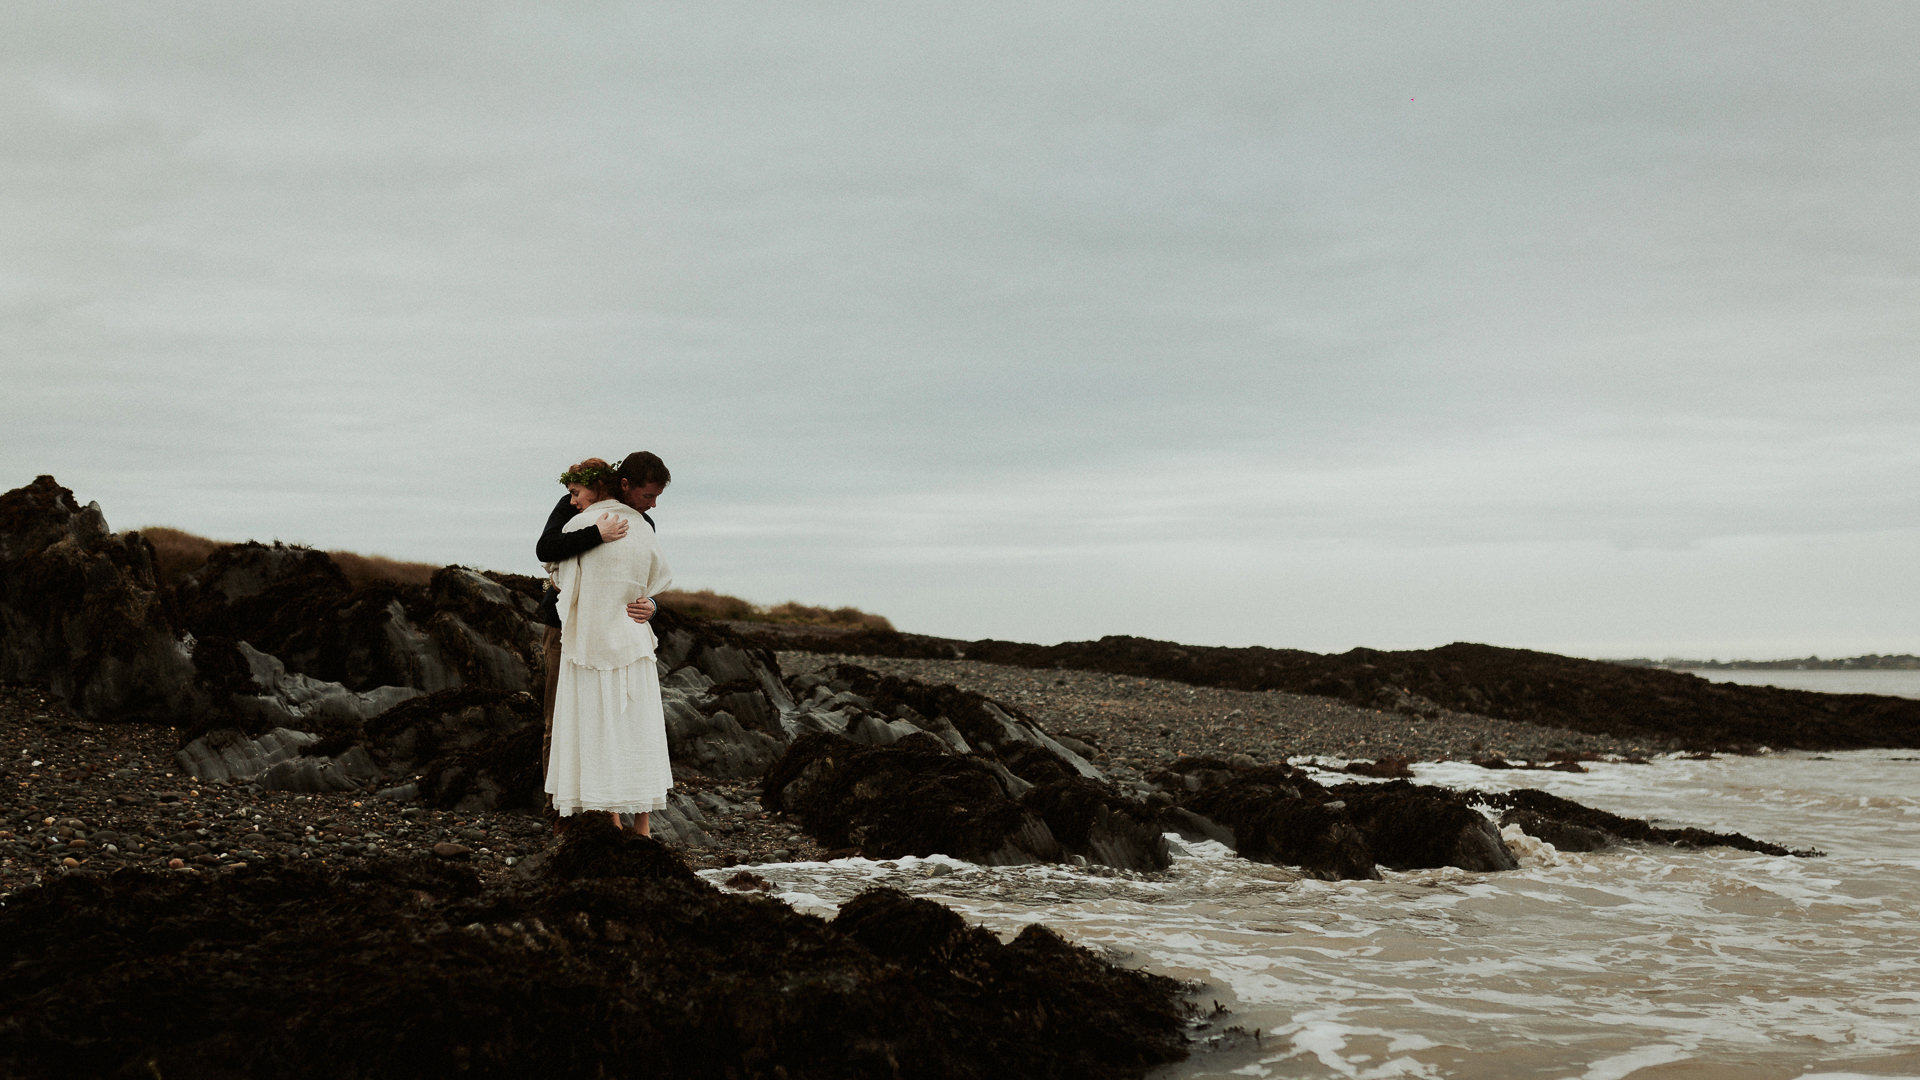 Ireland Wedding Photographer Destination Wedding Elopement 0035